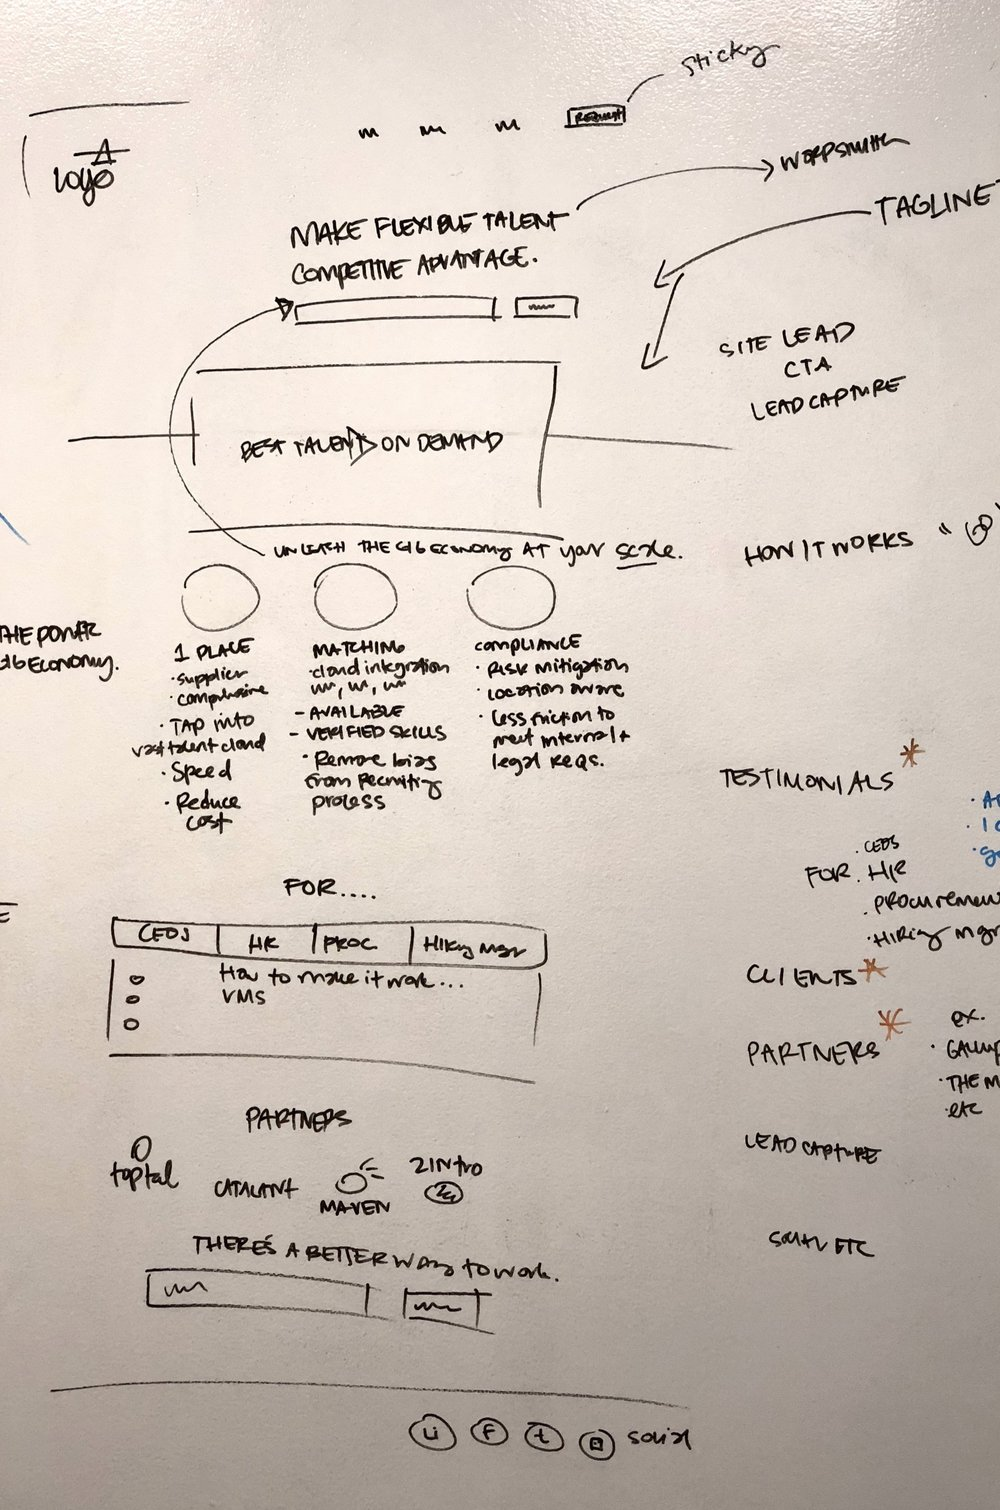 Whiteboarding the marketing page